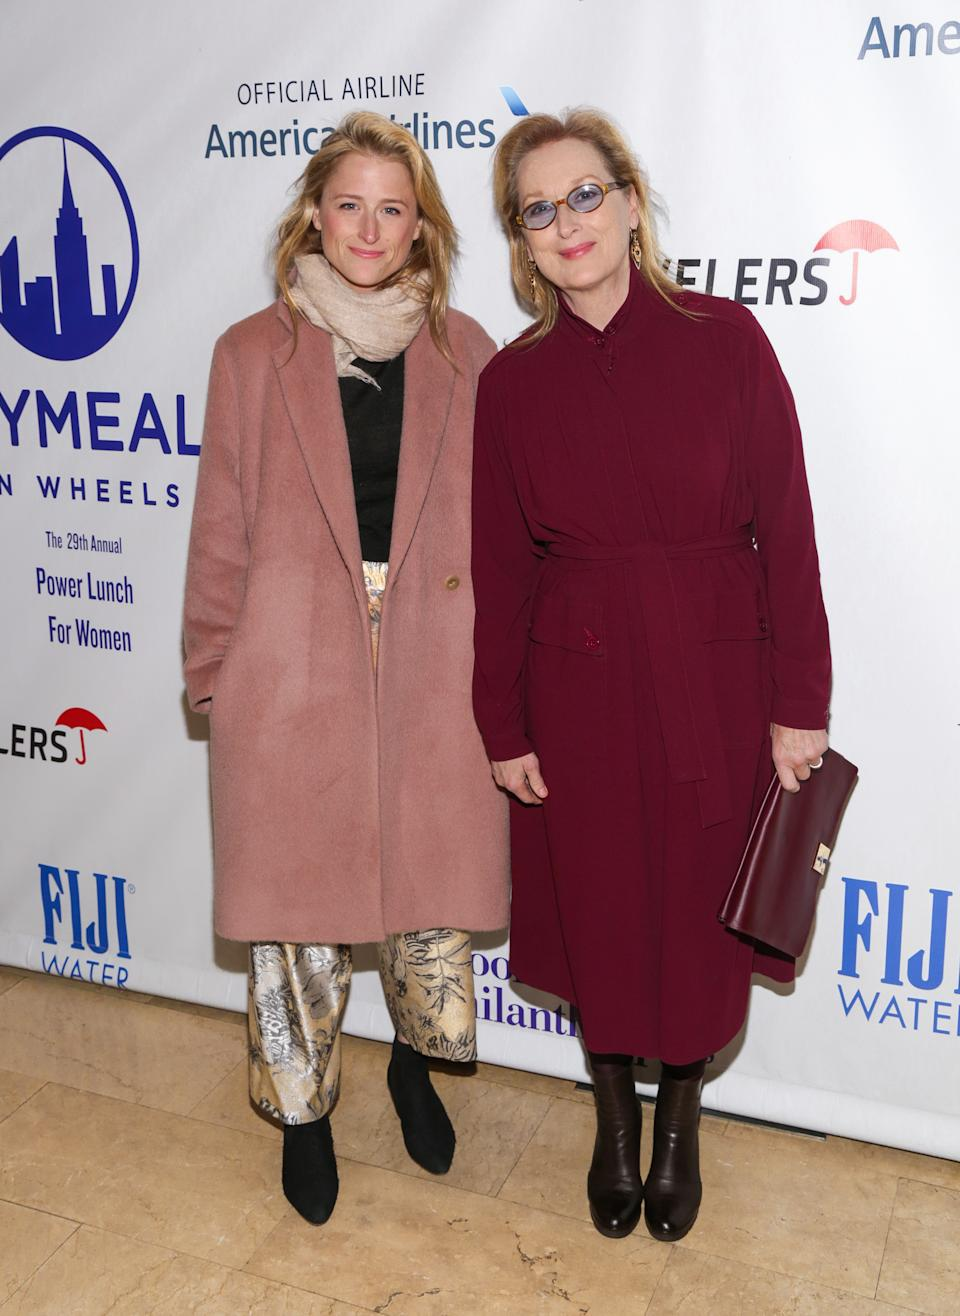 """Meryl Streep shared the screen with her lookalike daughter in the 2015 film, """"Ricki and The Flash."""" <em>(Image via Getty Images)</em>"""